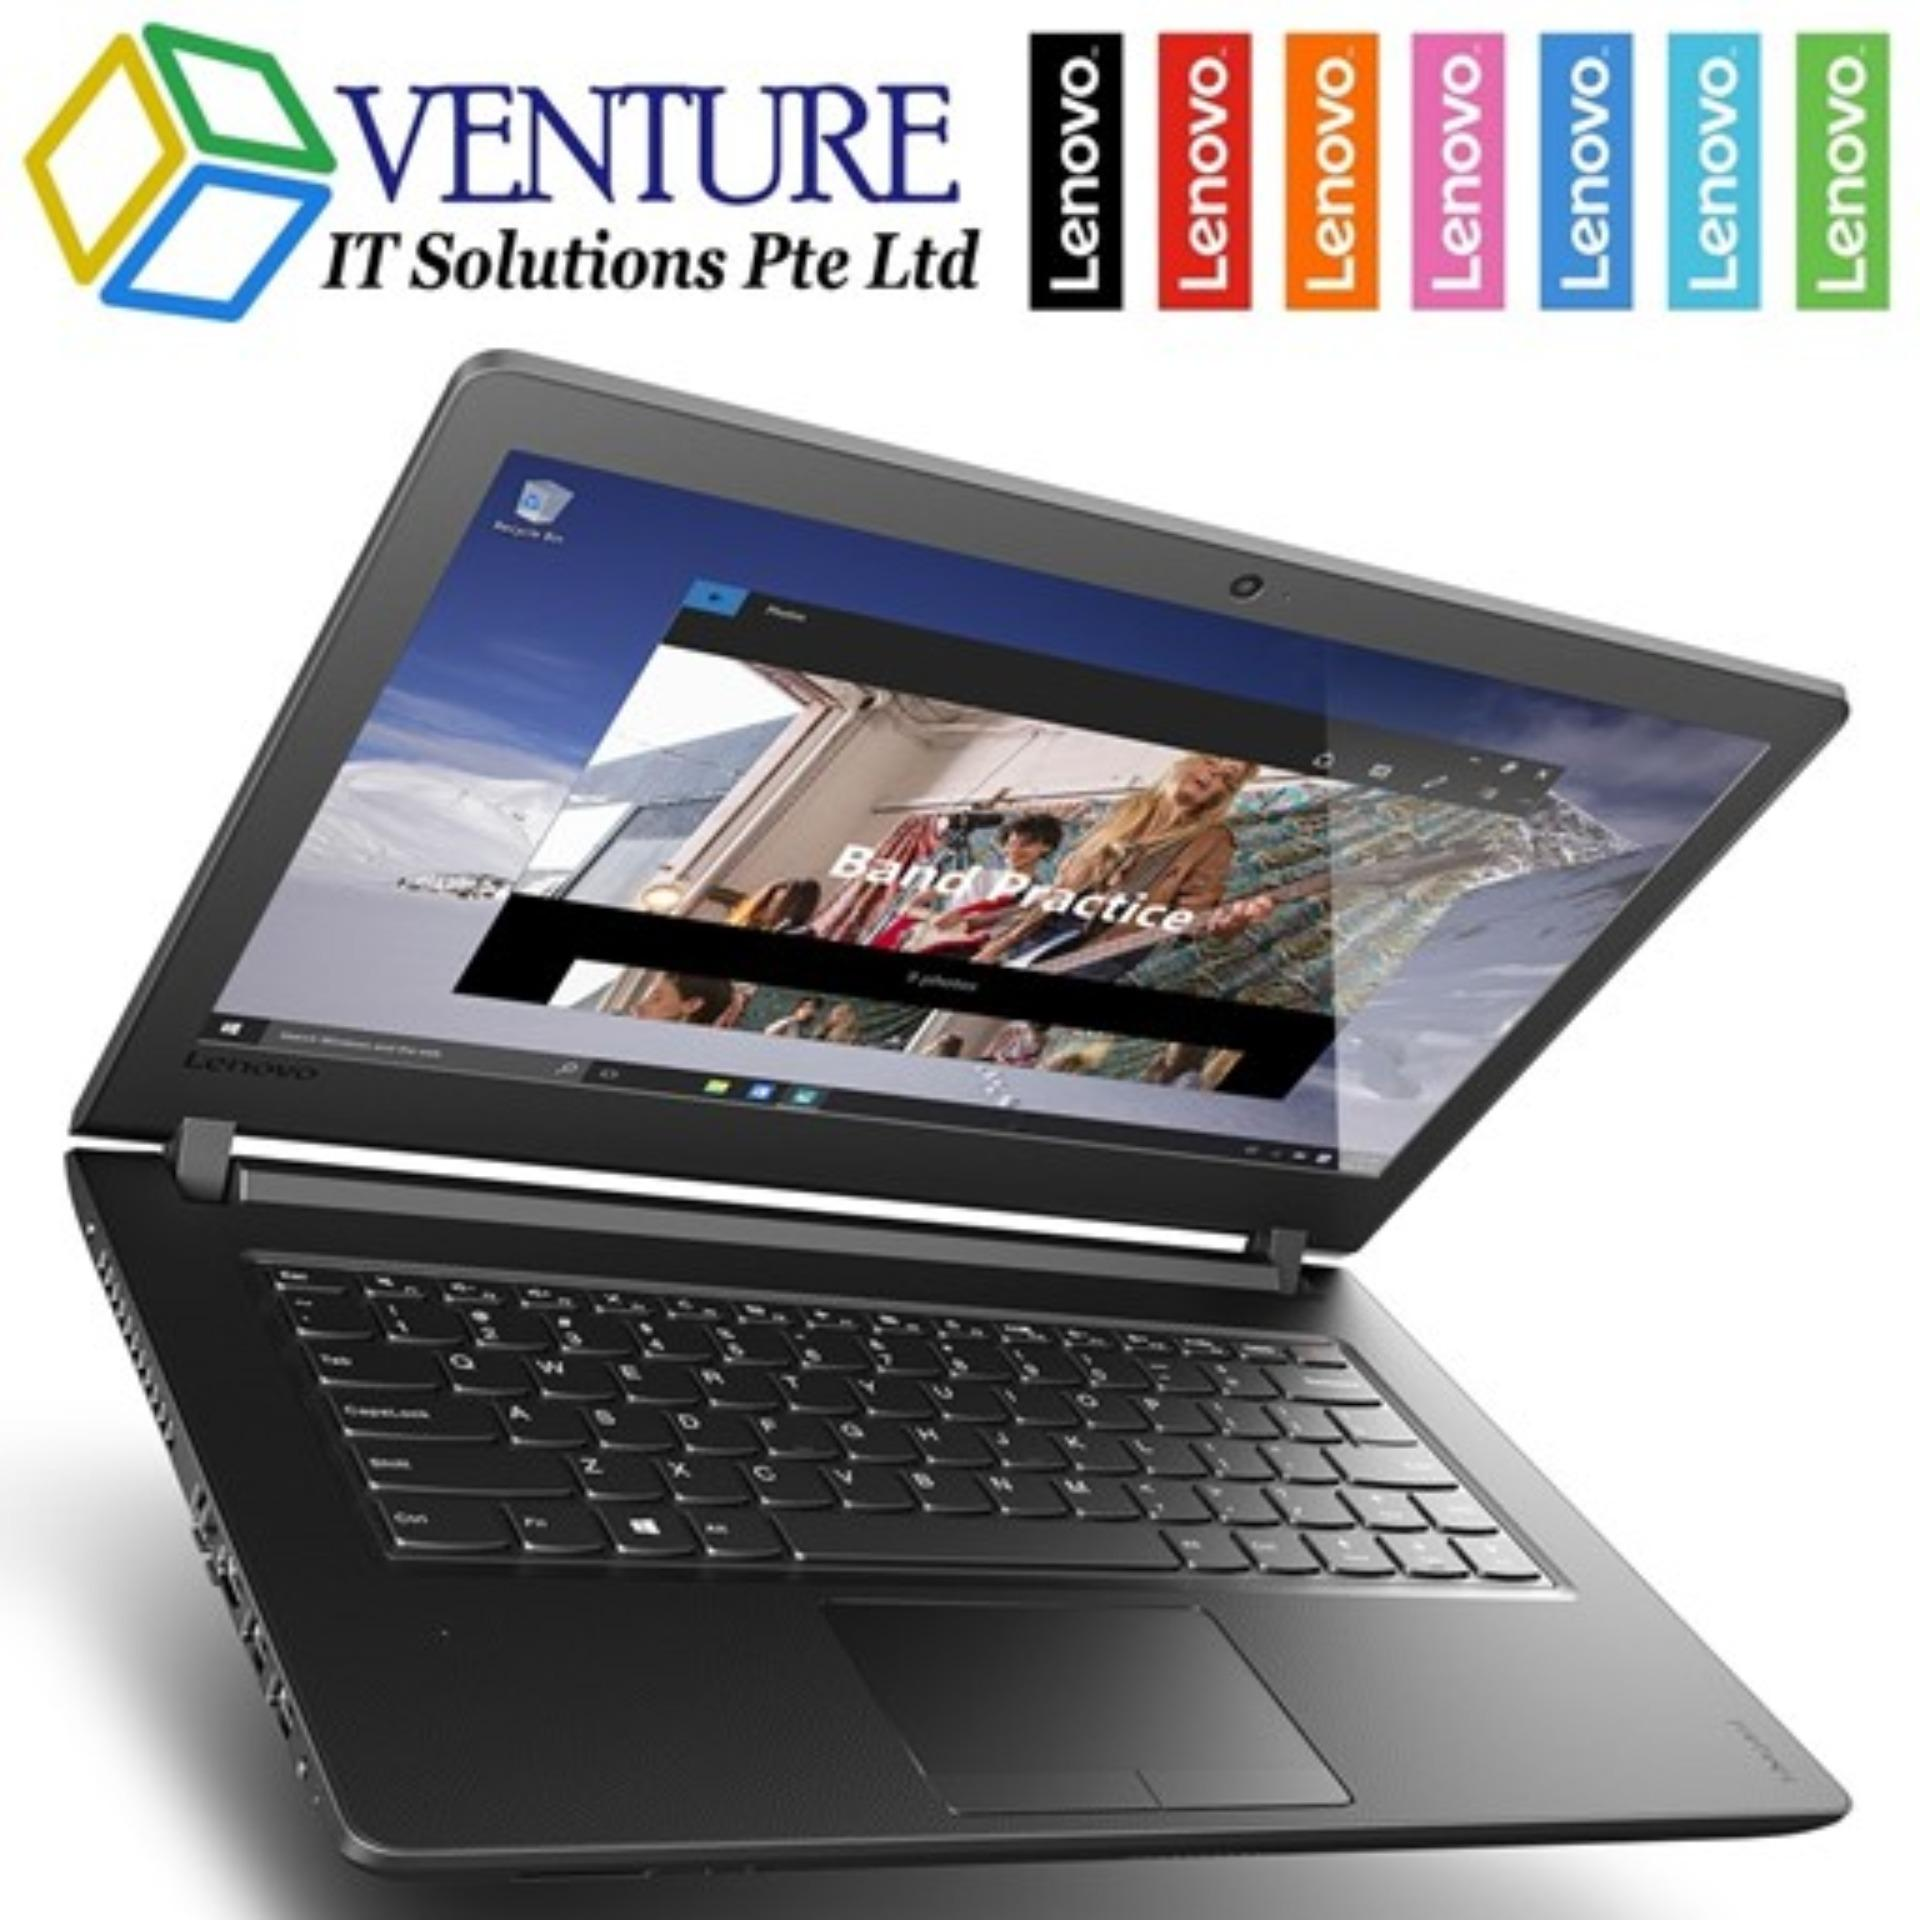 [BRAND NEW] LENOVO IDEAPAD 110-14IBR N3060 4GB 500GB 14″HD DVDRW WIN10